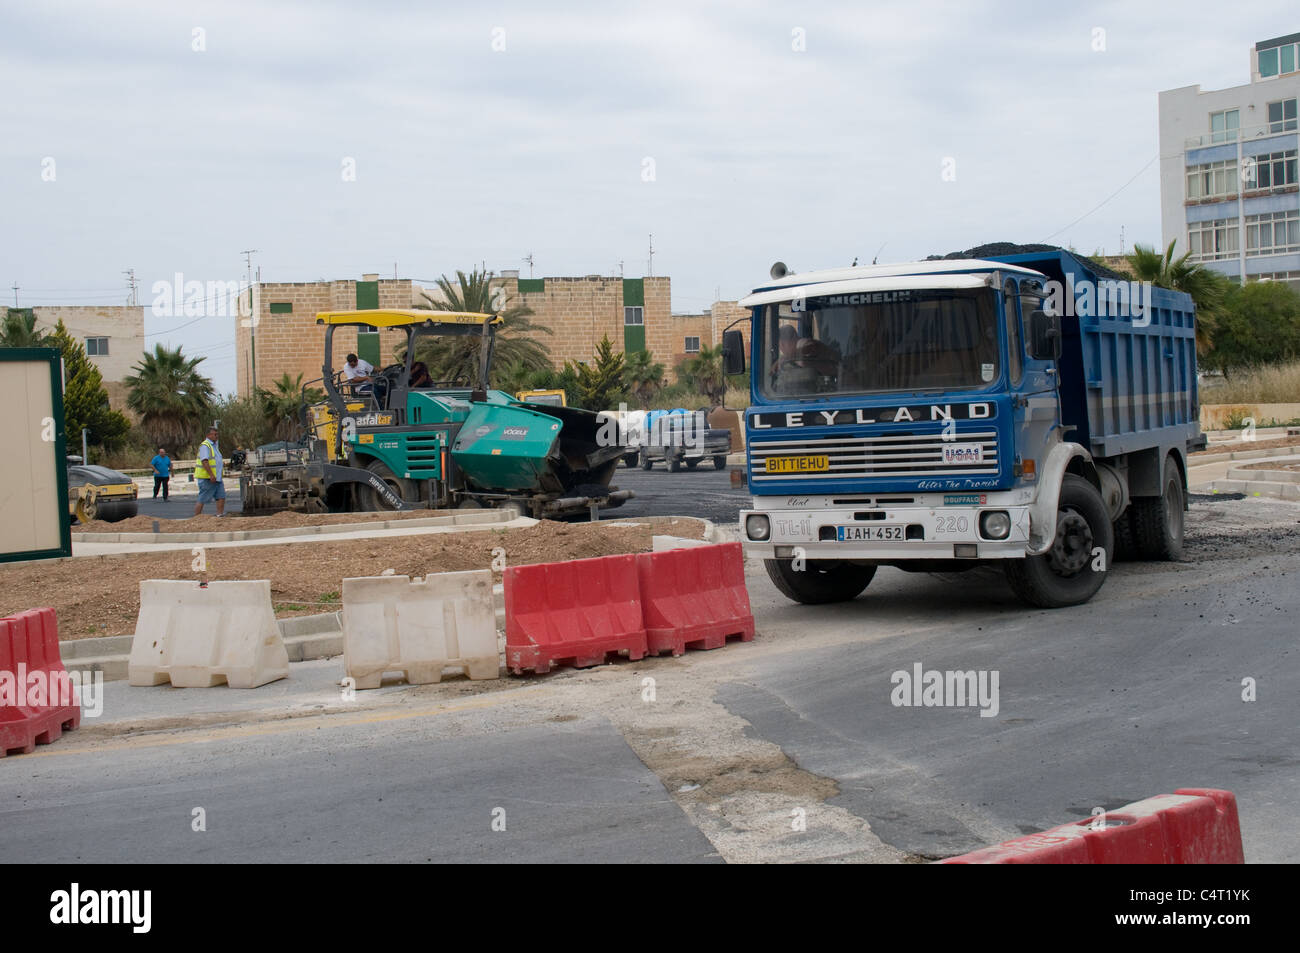 A tarmac laying machine lays a new road surface in preparation of the revised bus station in Bugibba, Malta - Stock Image